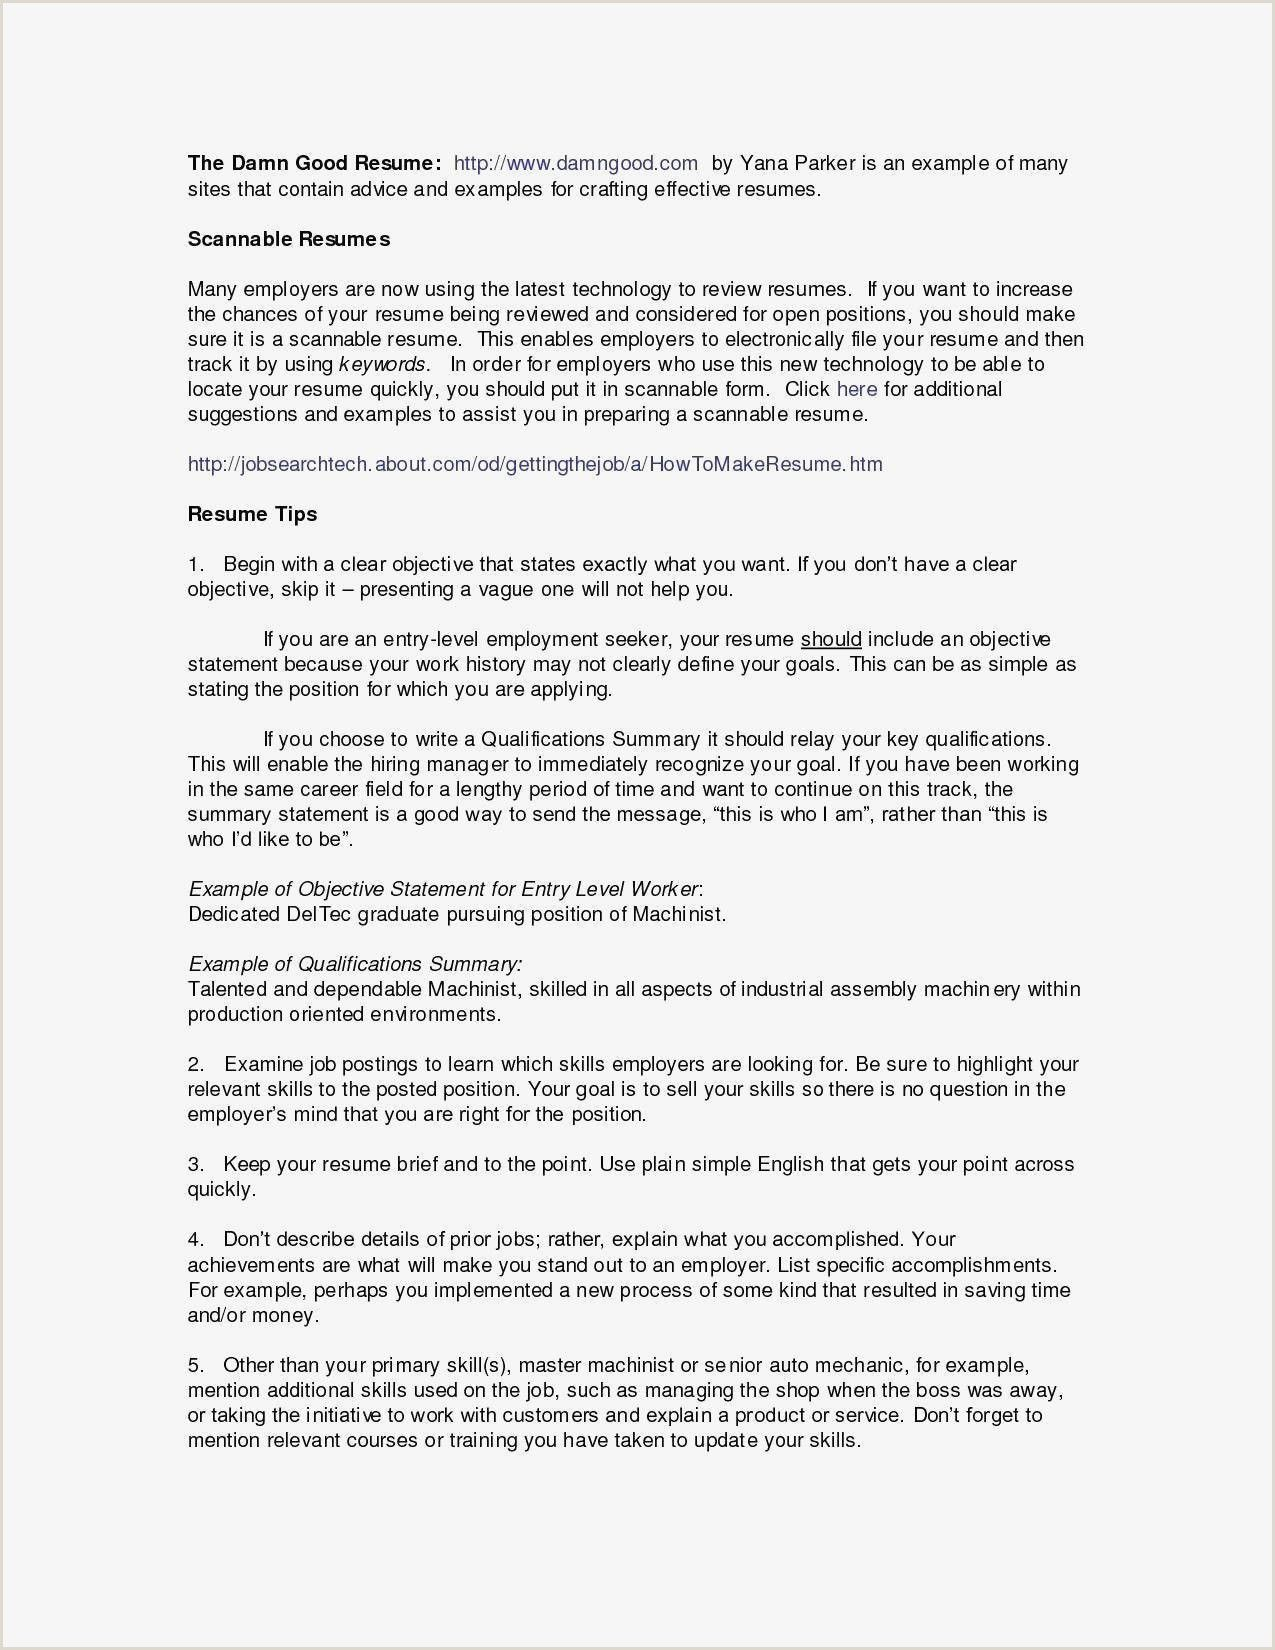 British Standard Cv Format In 2020 Resume Objective Examples Cover Letter For Resume Project Manager Resume